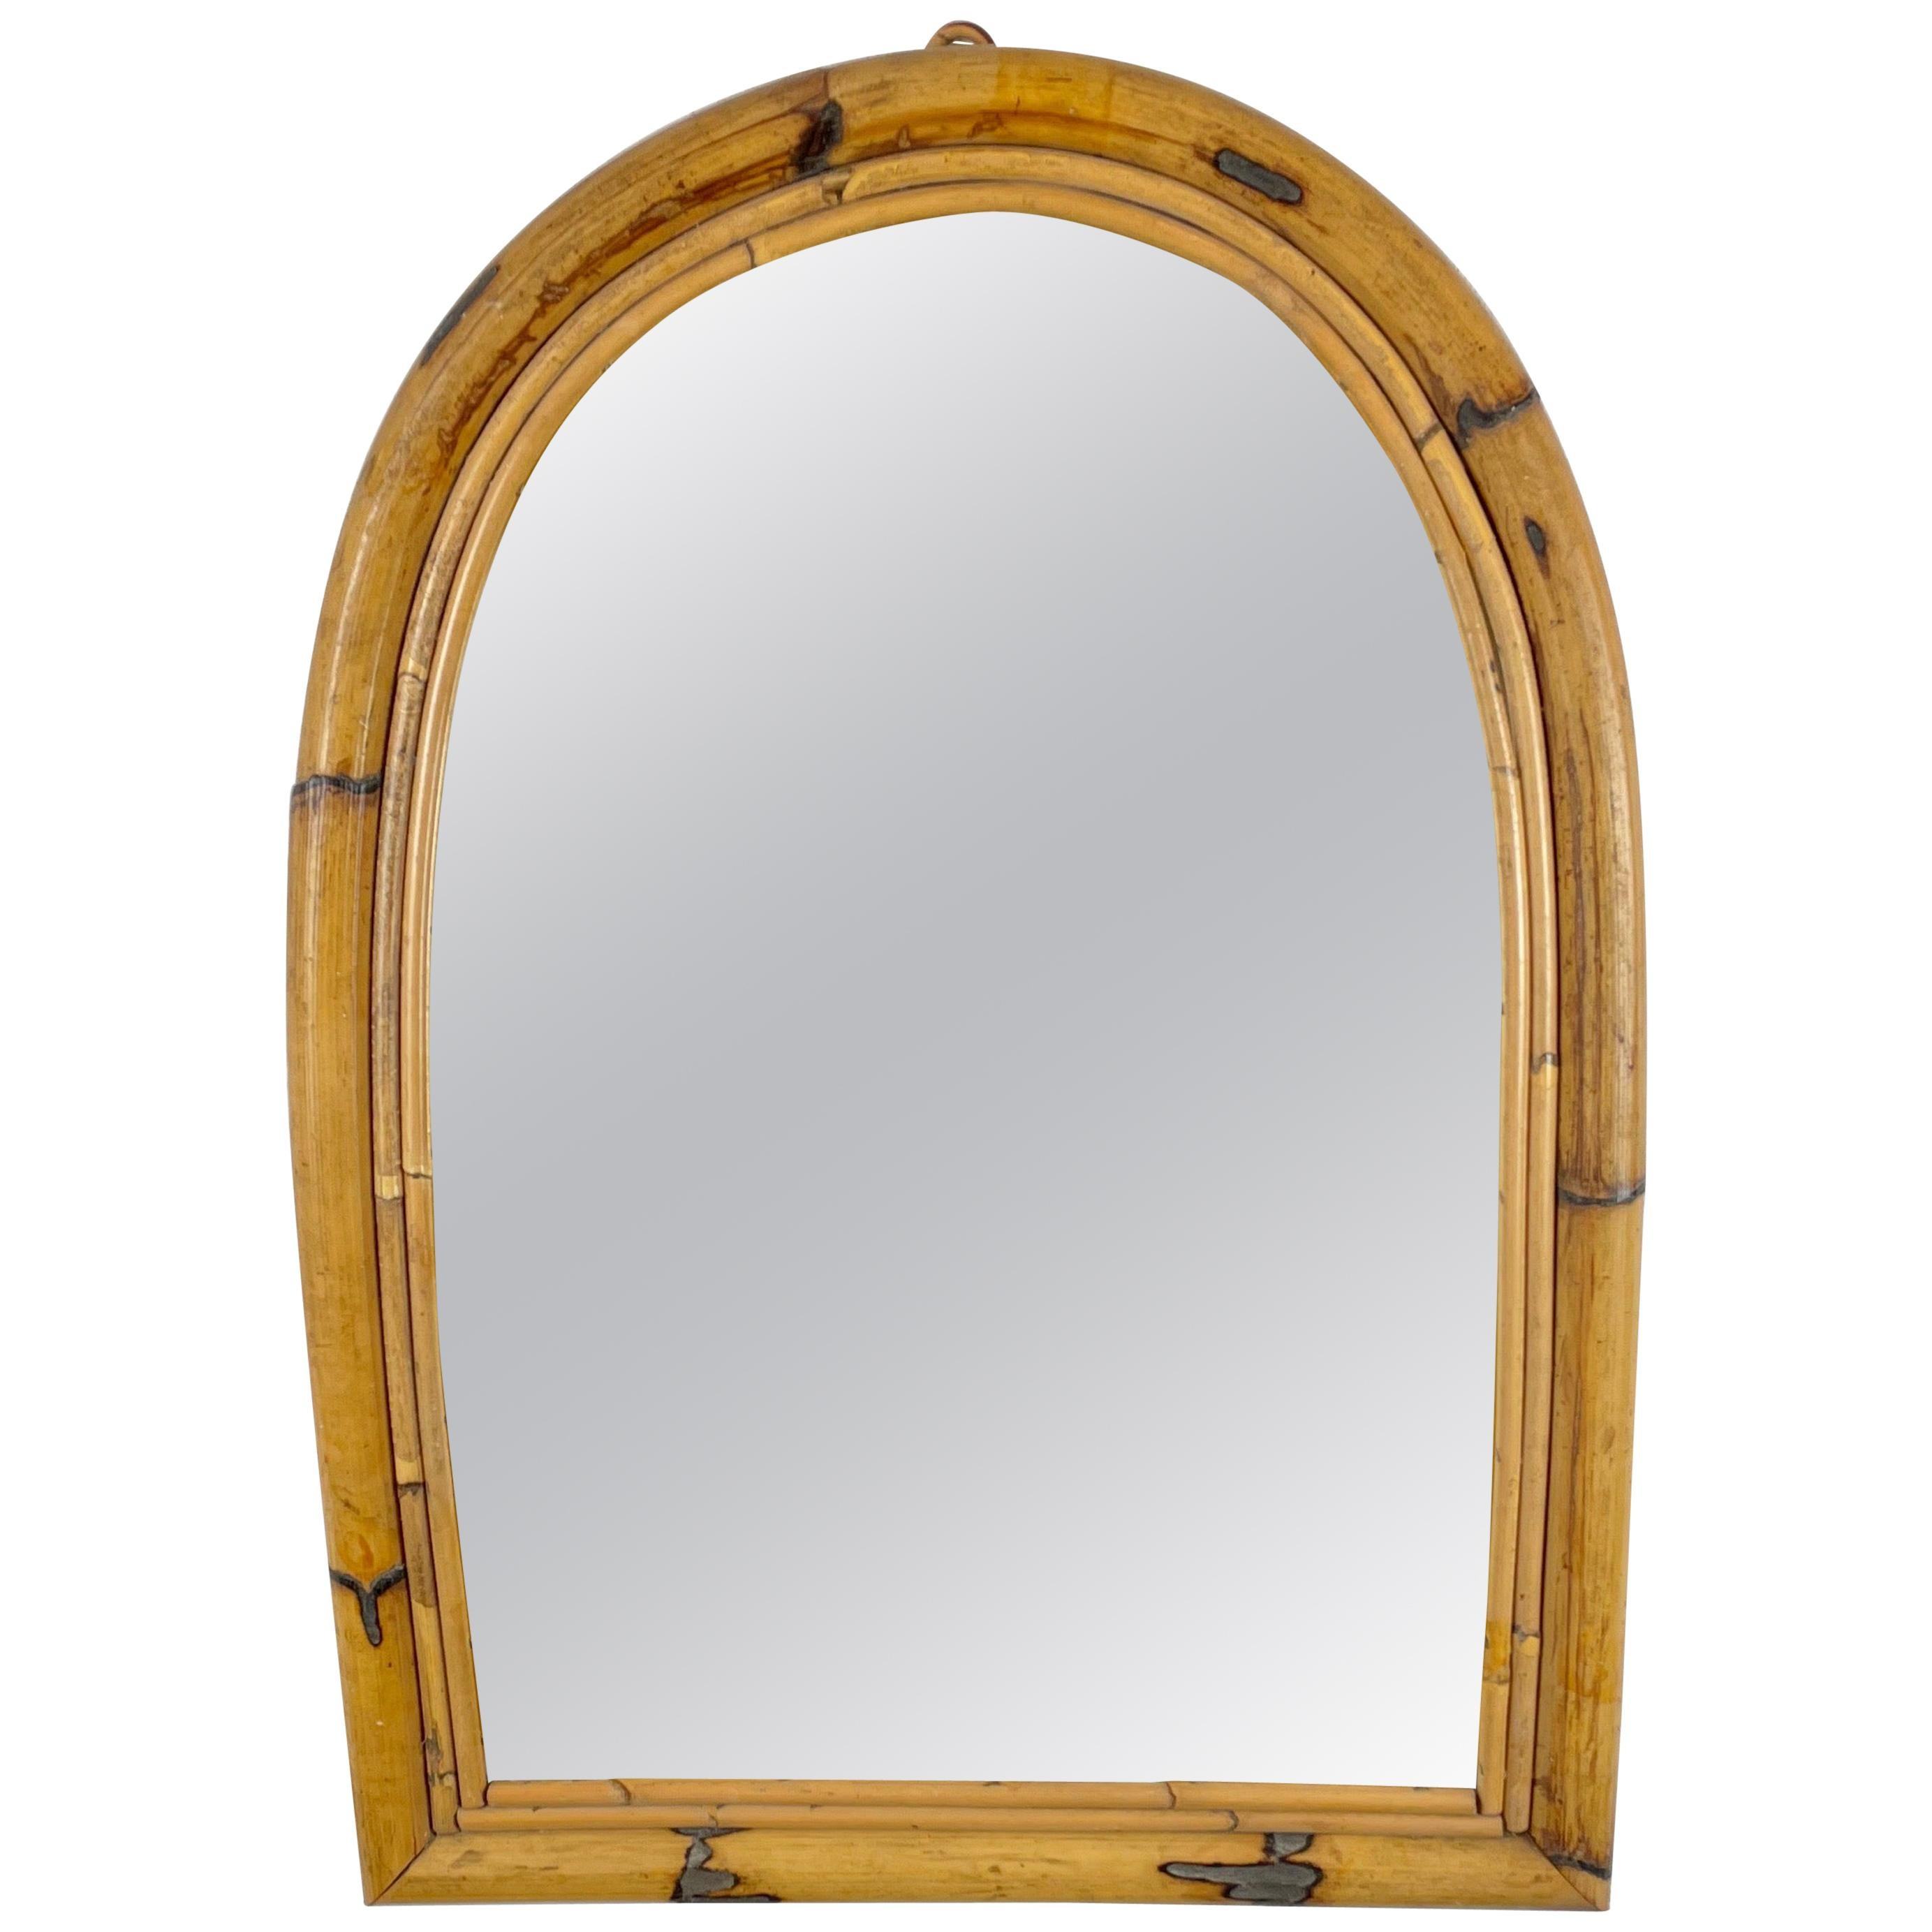 Arched Bamboo Rattan Wall Mirror, Italy, 1960s